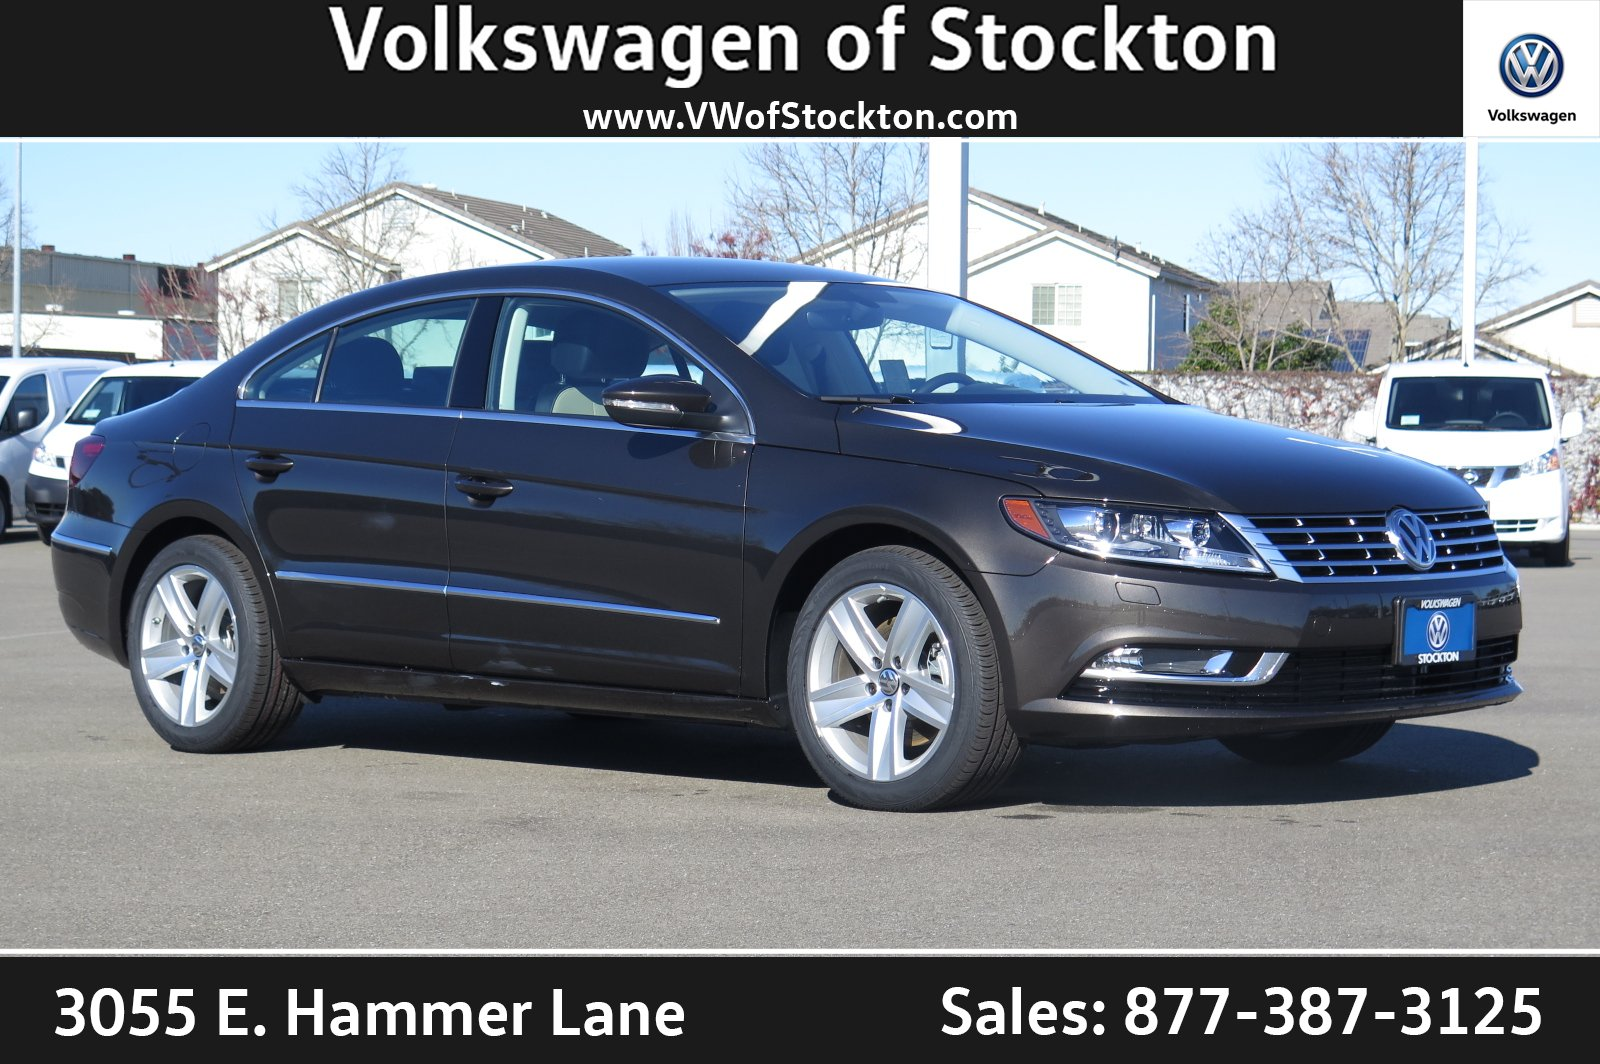 stockton of special dtw offers california htm in volkswagen and el dealership ca sale ford vw pre used expedition owned new lithia